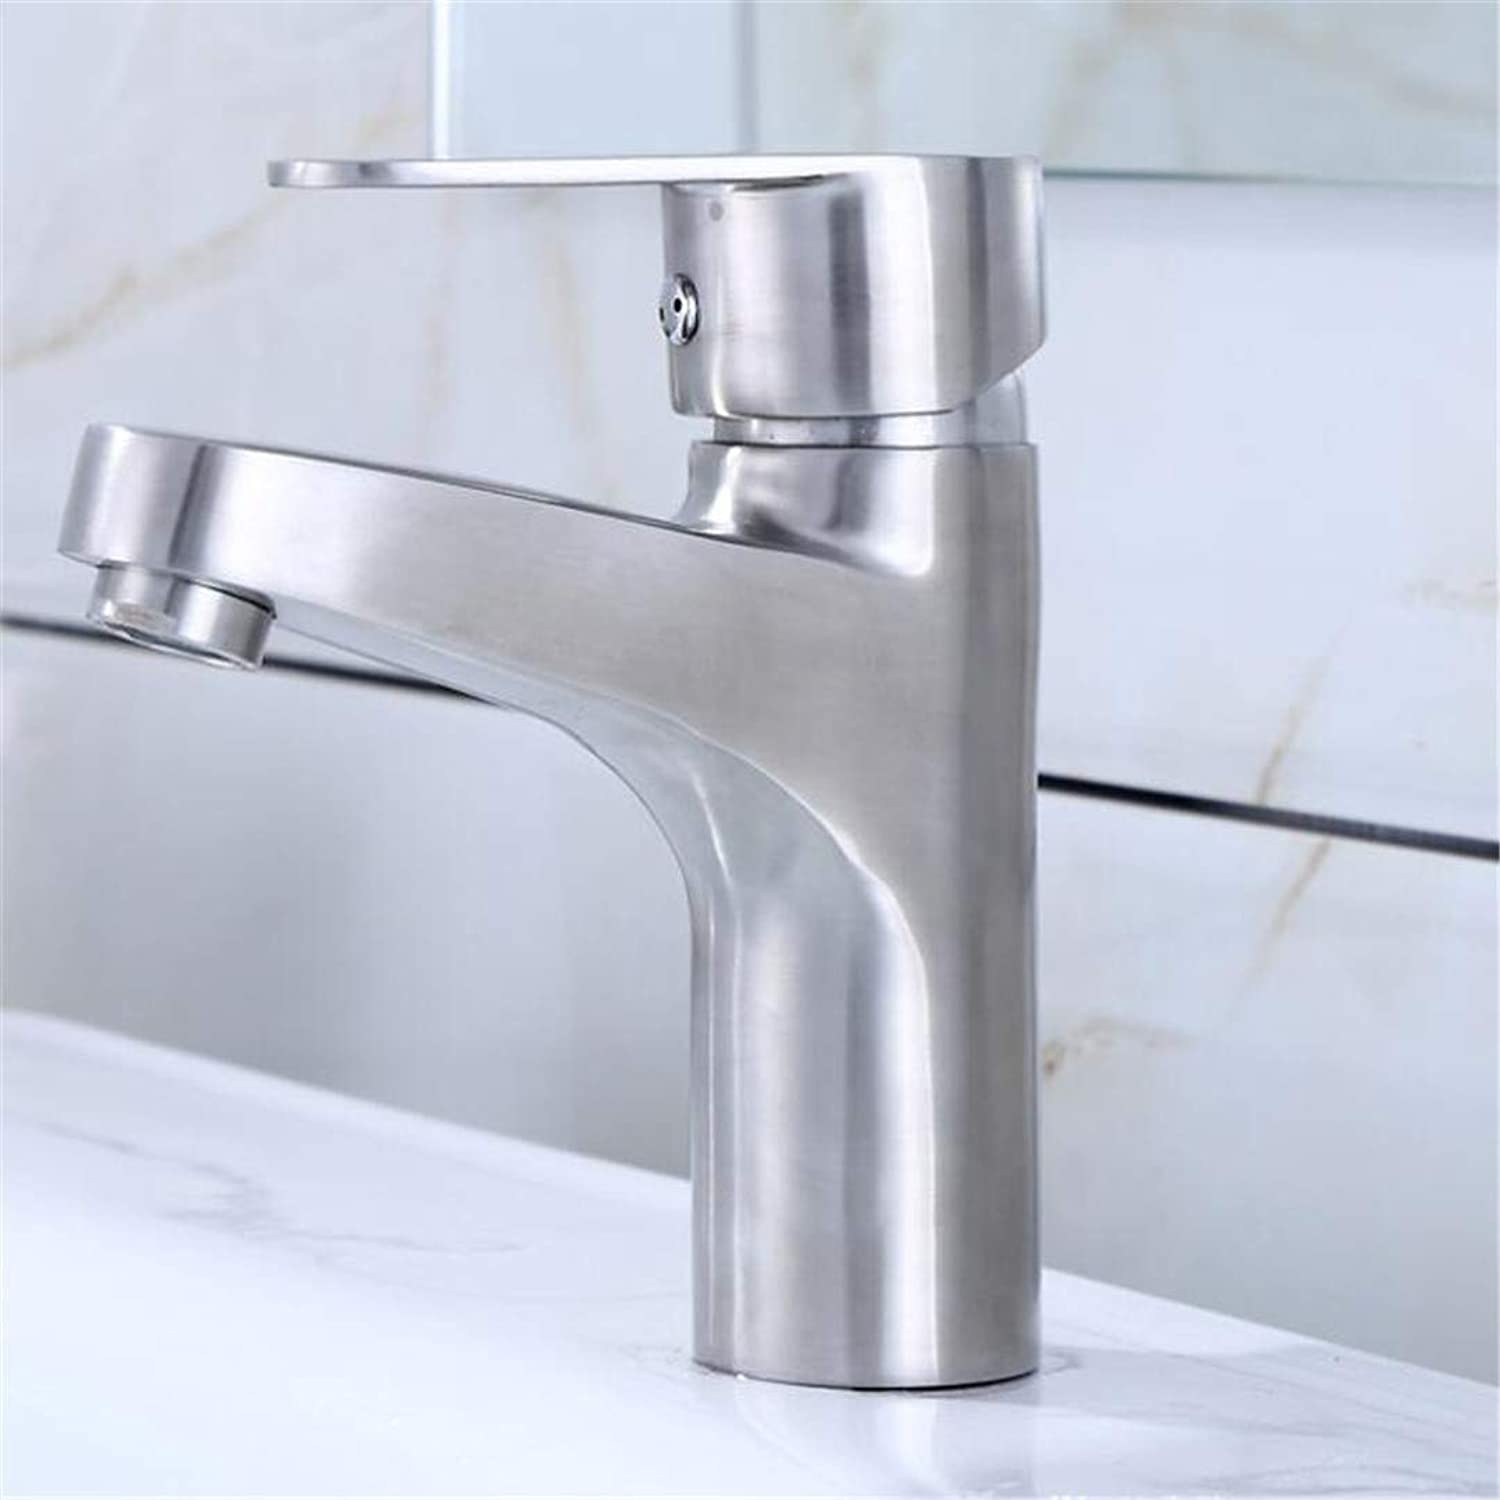 Bathroom Sink Bath Faucet Stainless Steel Wire Drawing Monk Single Hole Hot and Cold Washbasin Basin Faucet Basin